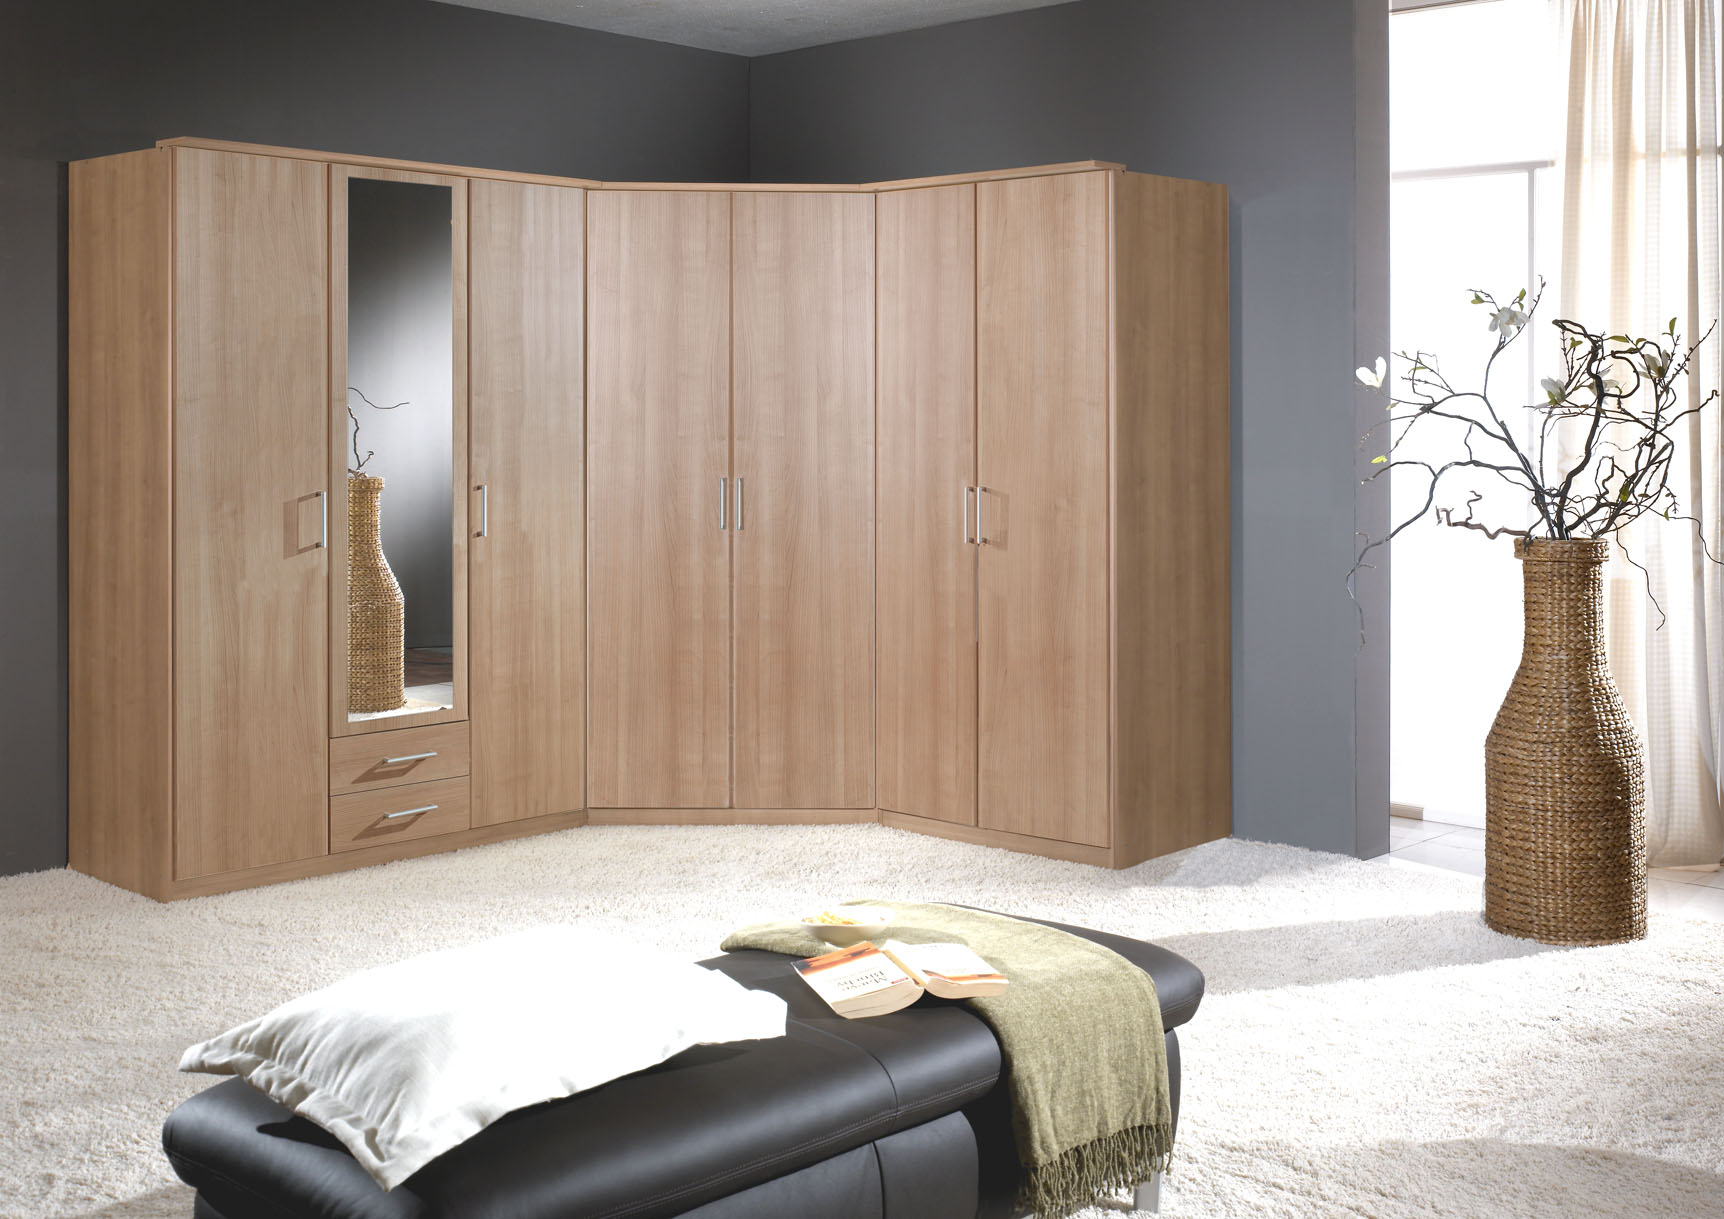 Genoa oak effect 2 door german corner wardrobe 112511 for Farnichar dizain sofa